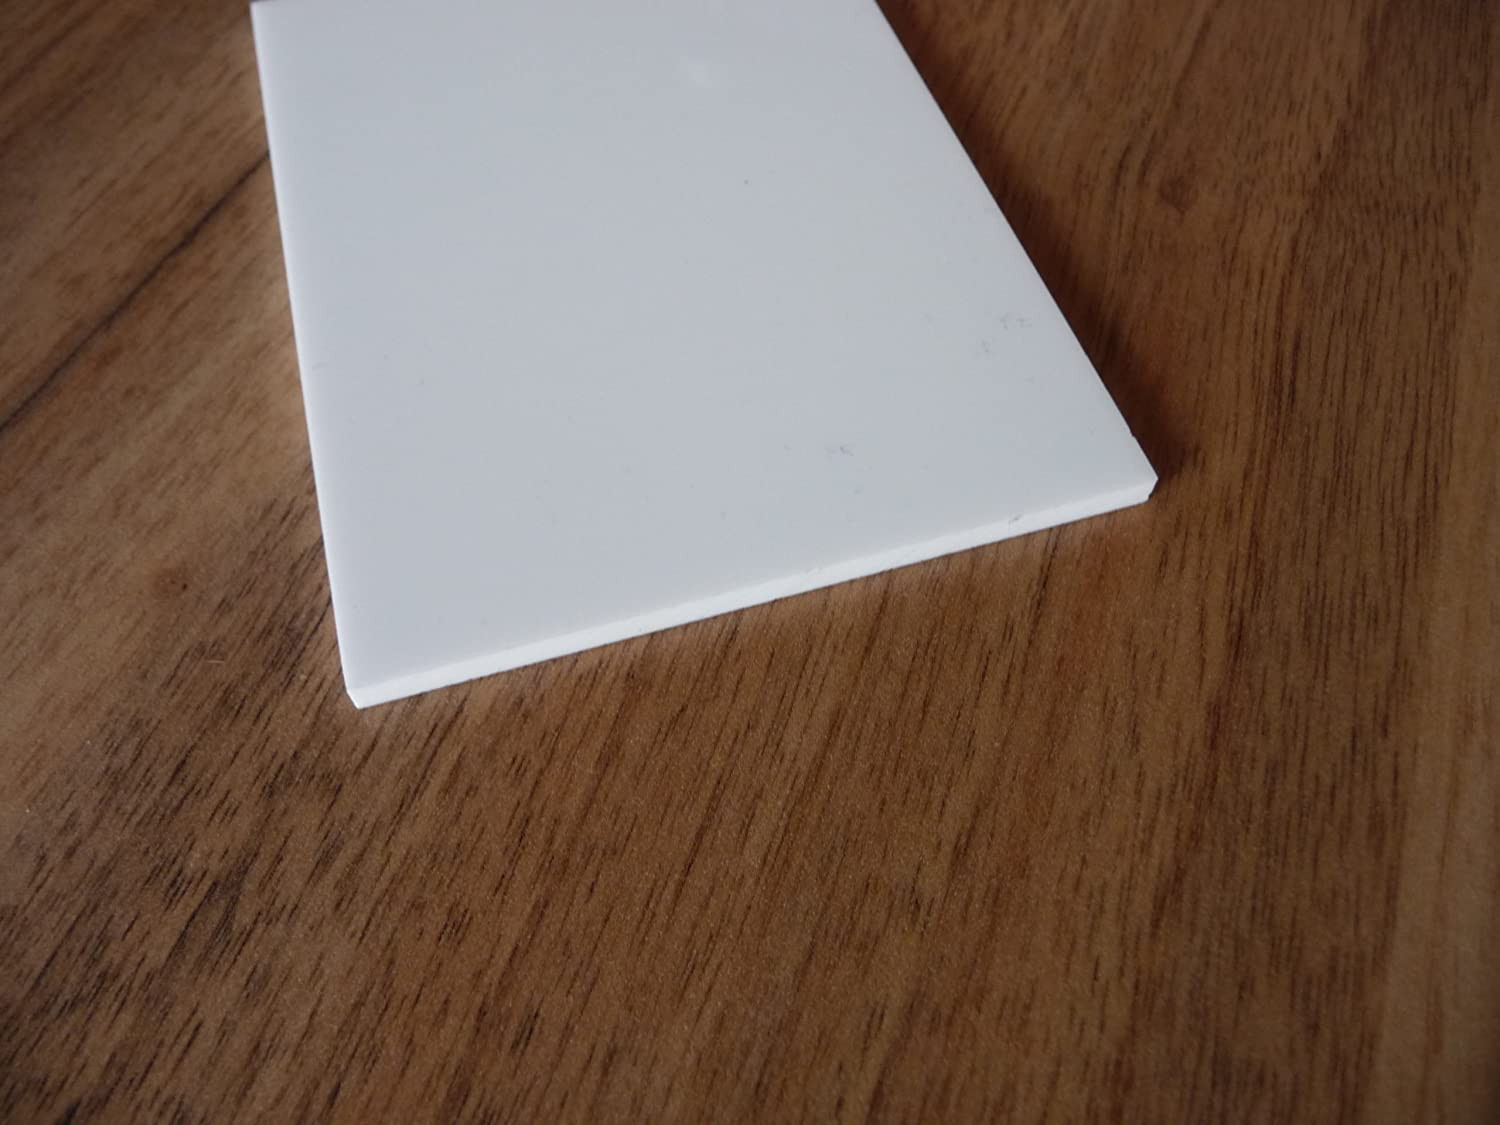 Plaque acrylique XT blanc 500 x 500 x 3 mm PMMA blanc alt-intech® alt-intech PC/PMMA Plaque